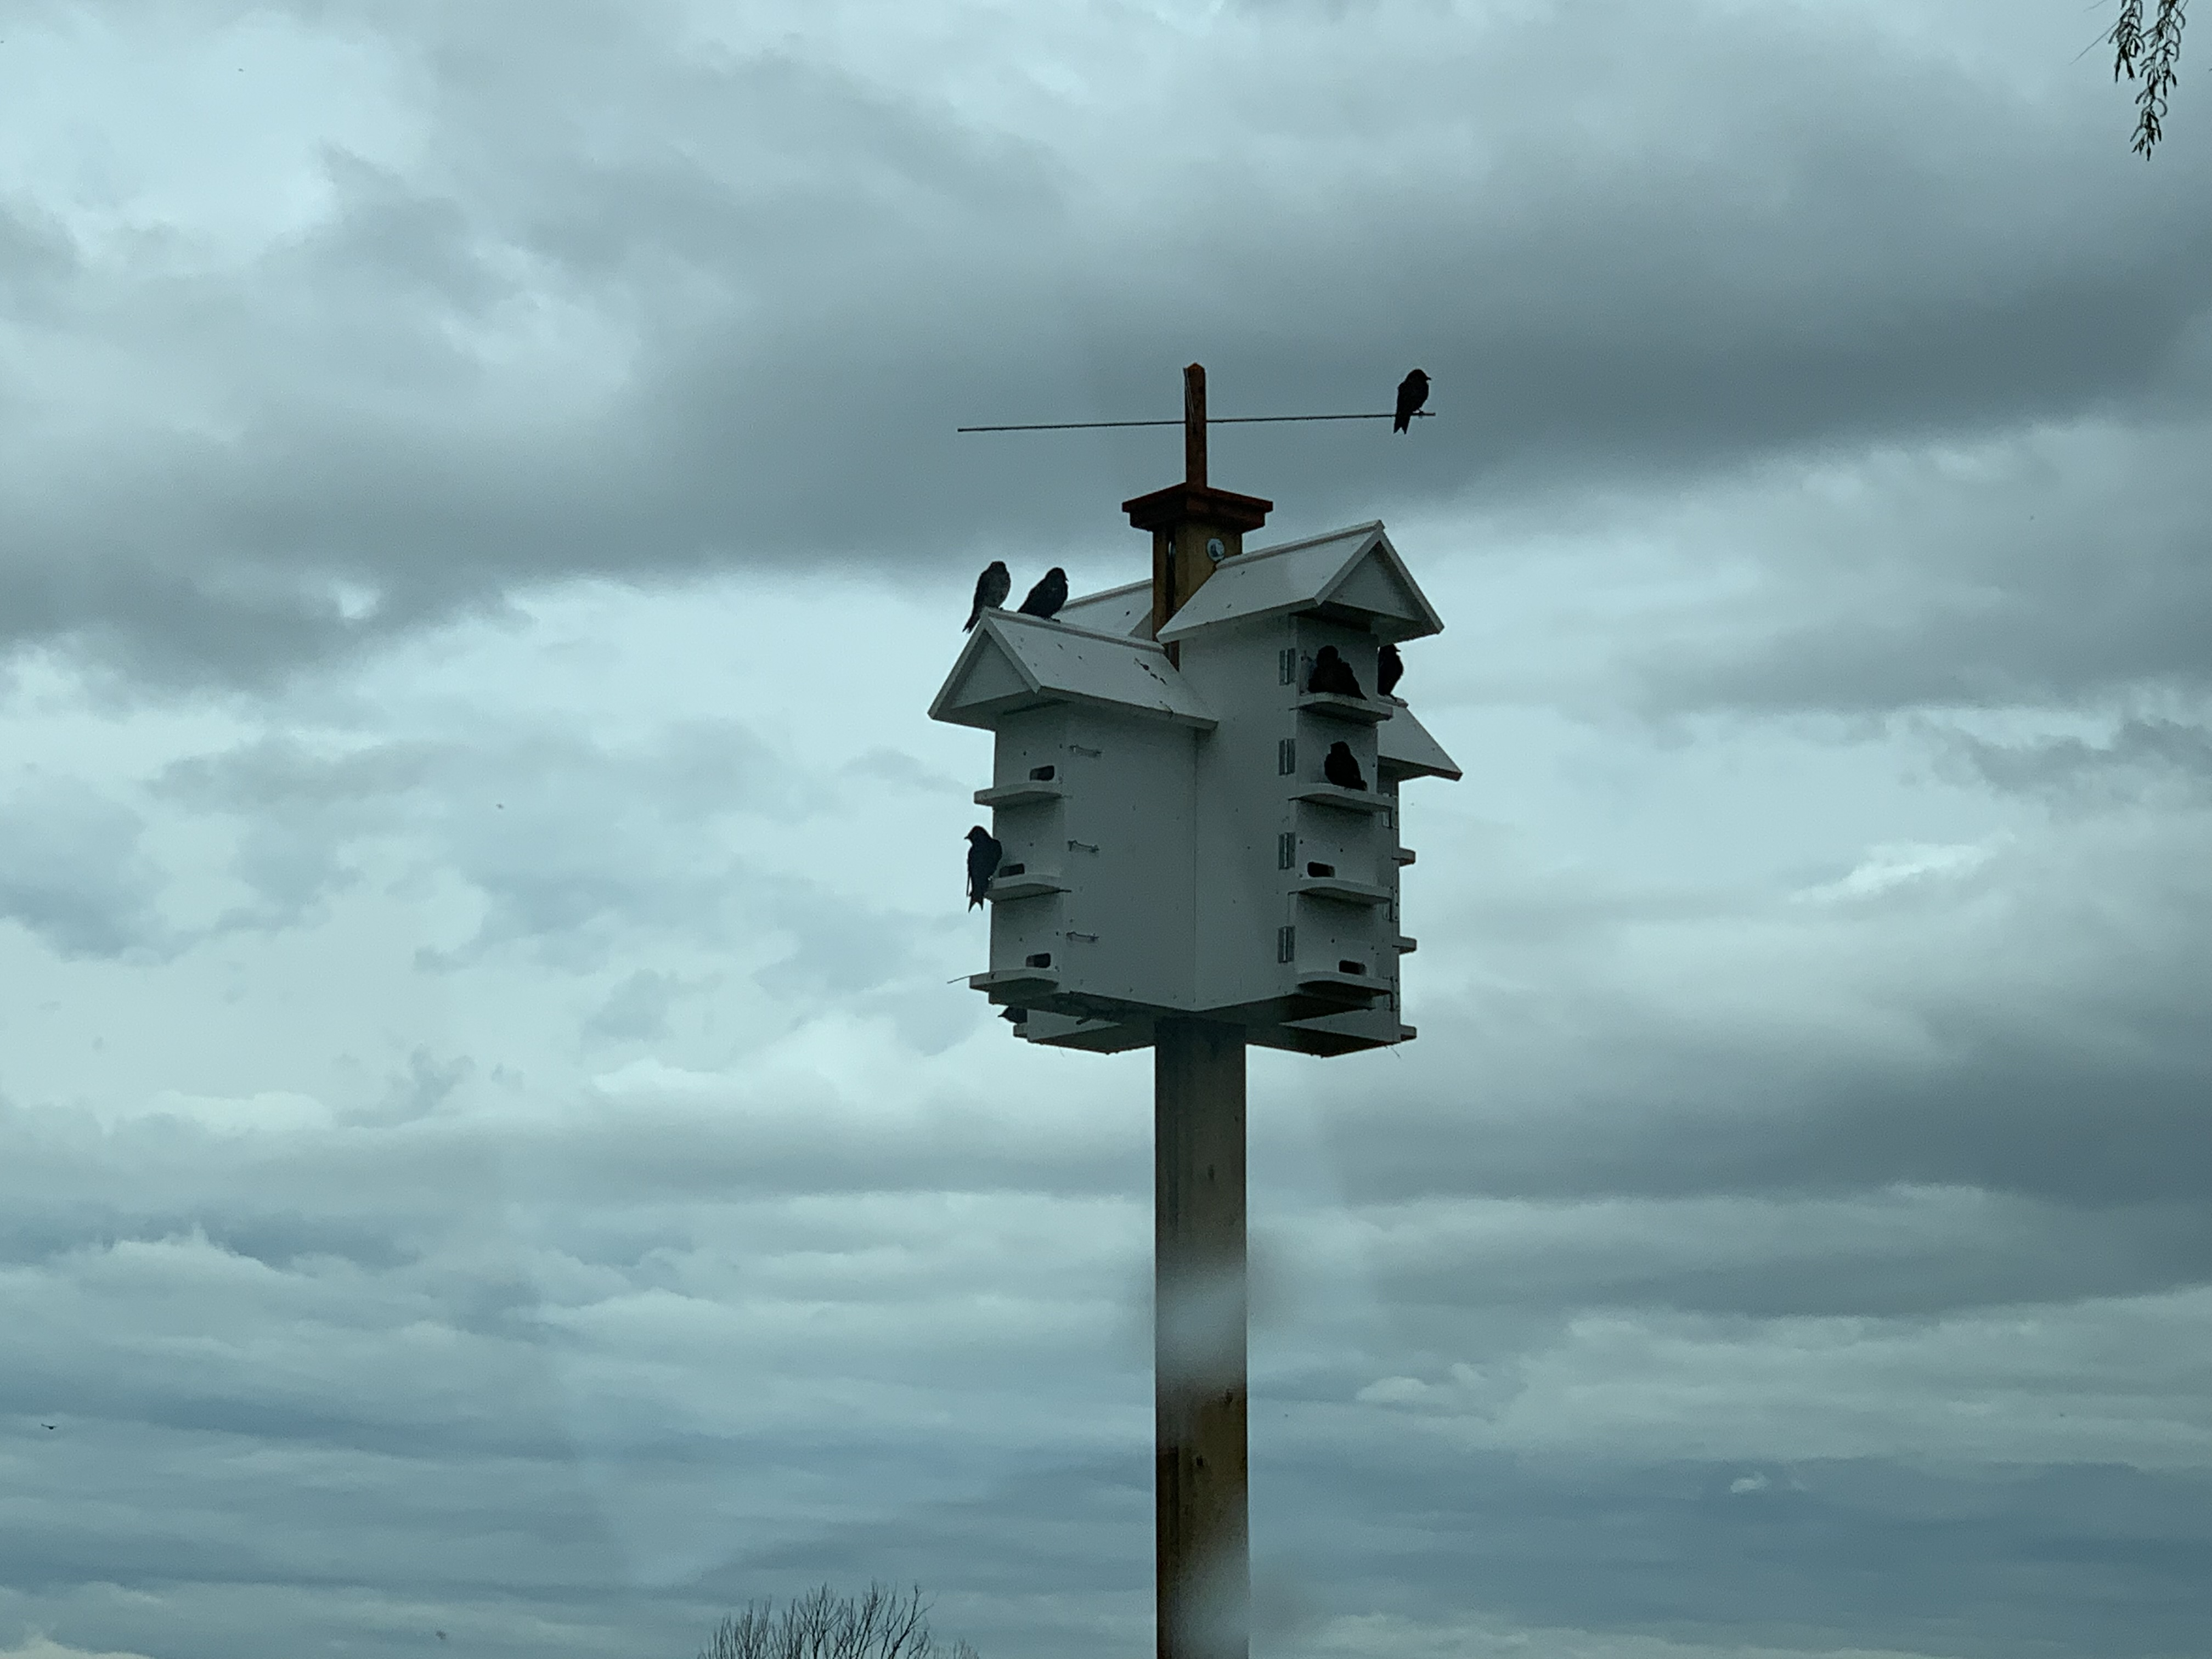 Reaping the Rewards: Purple Martin Housing a Success!